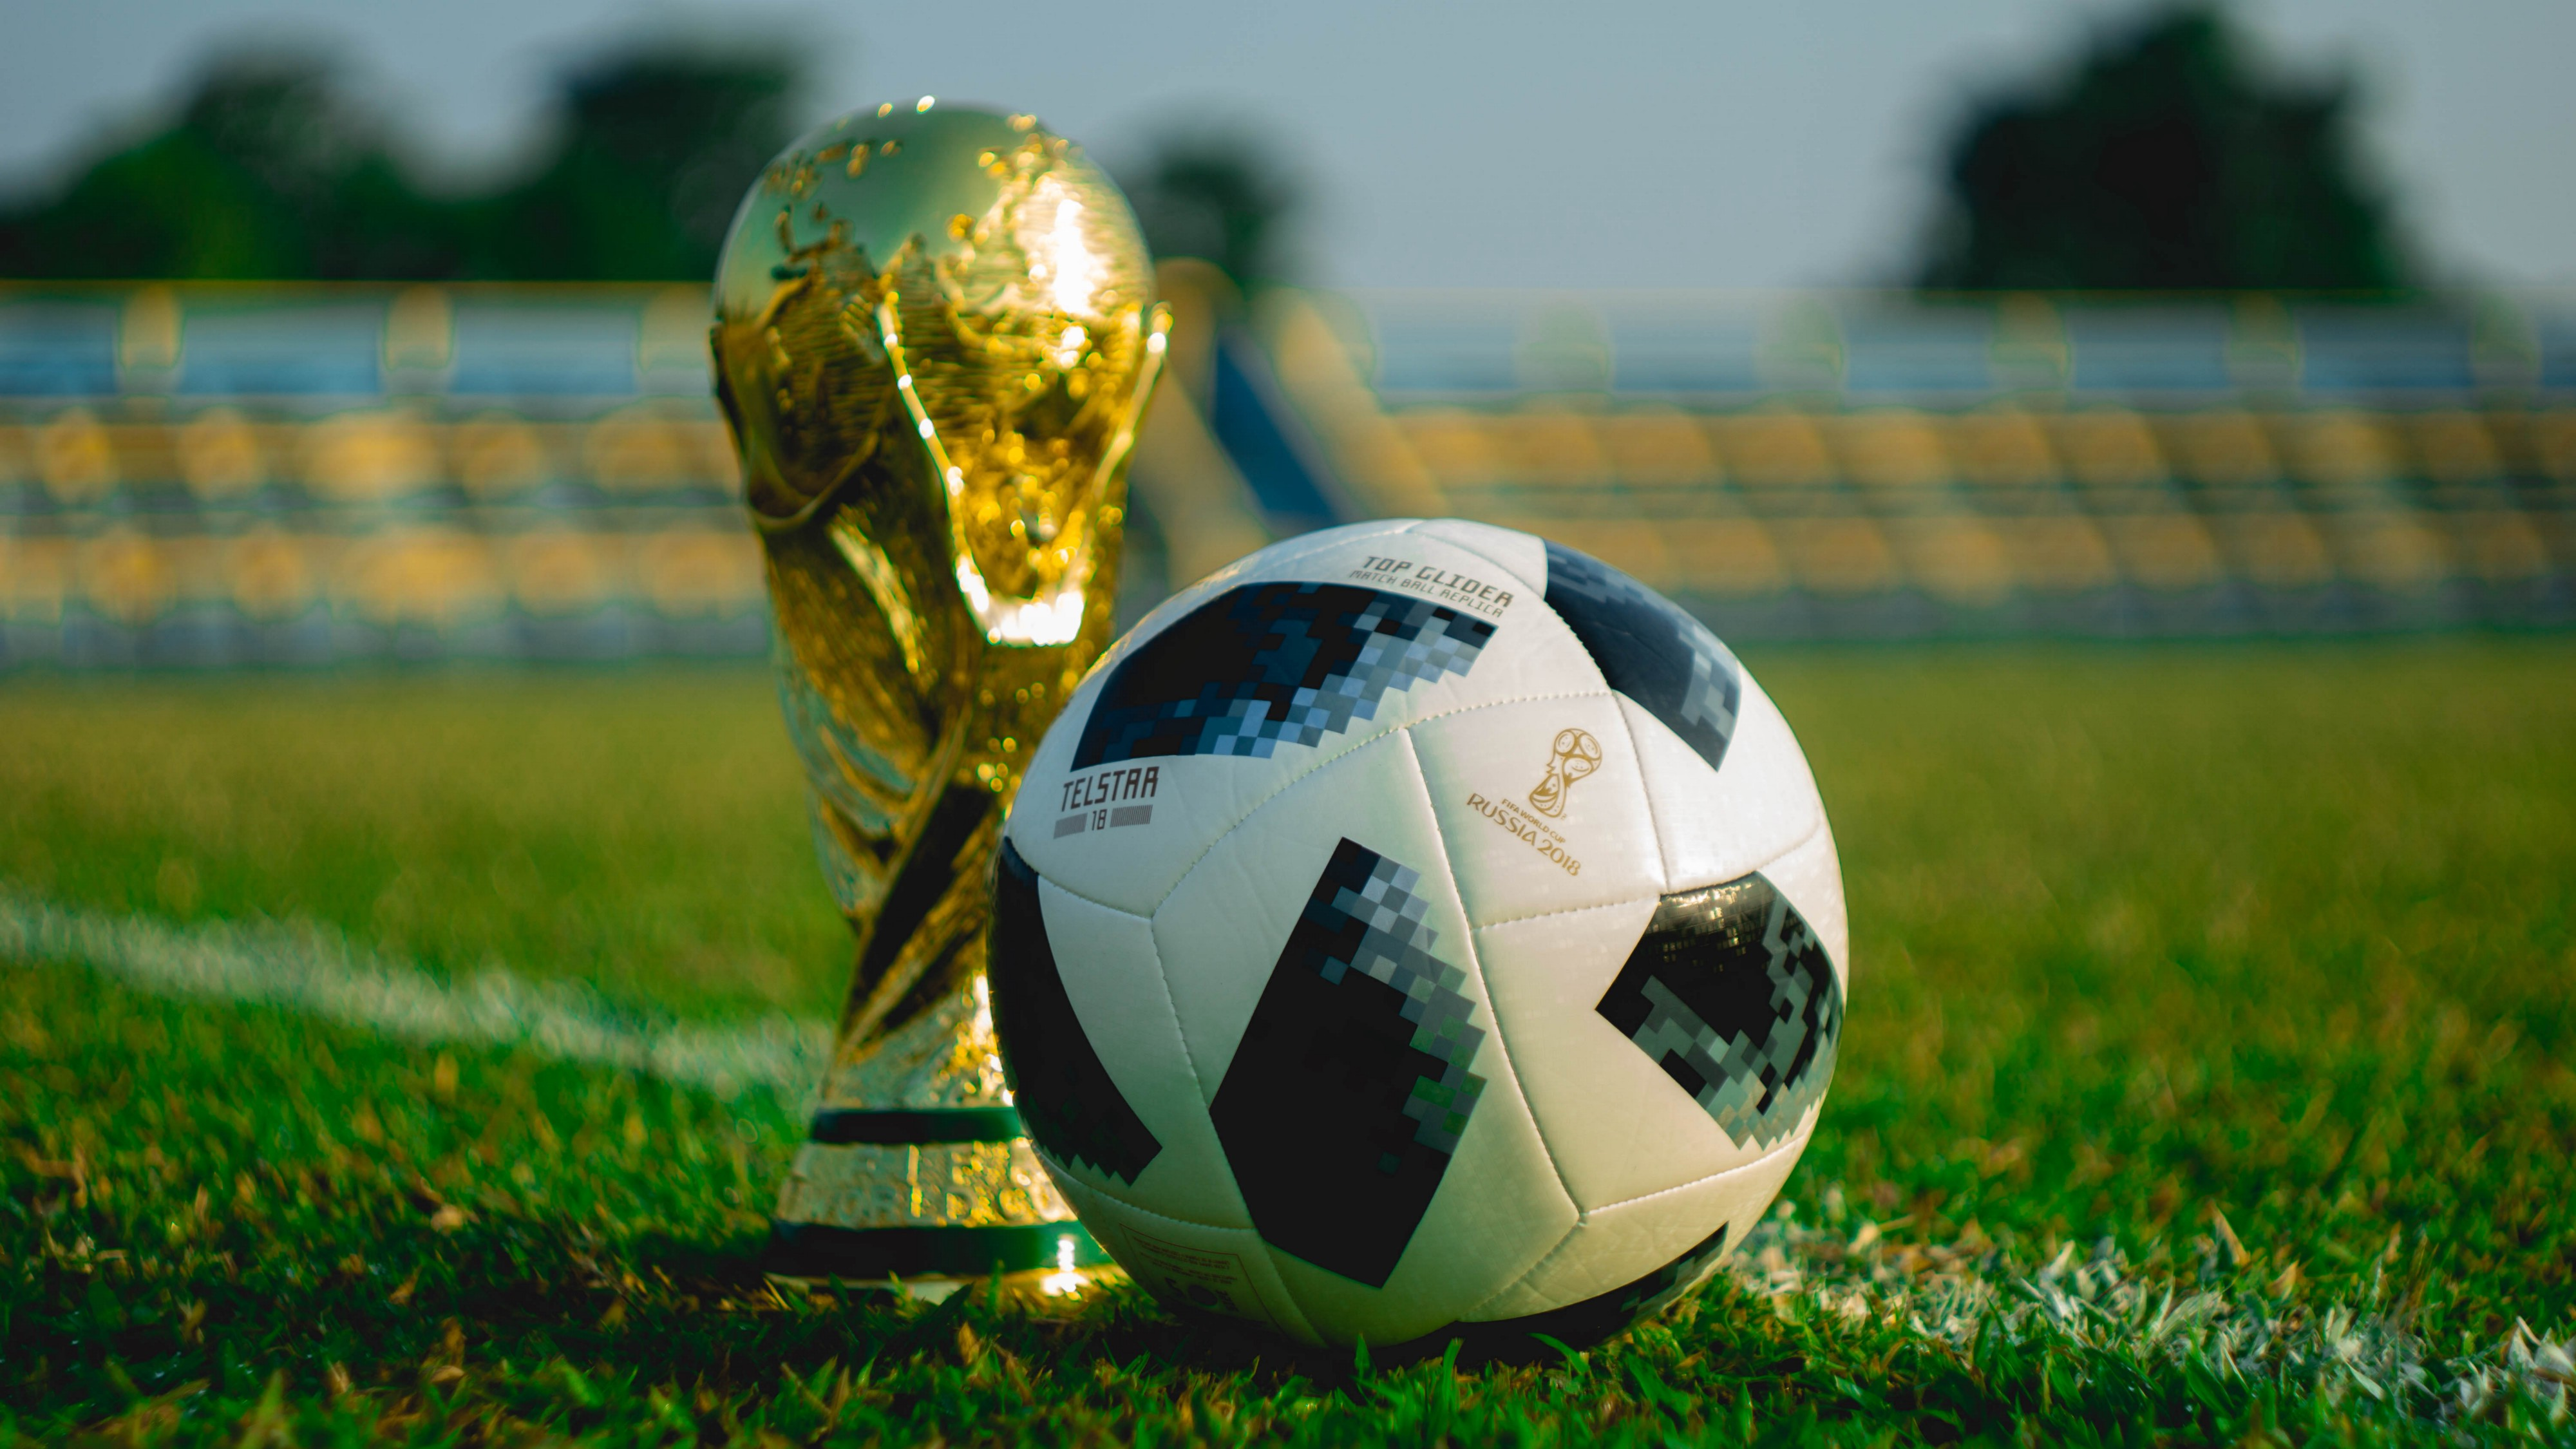 Applying Machine Learning clustering on soccer World Cup results